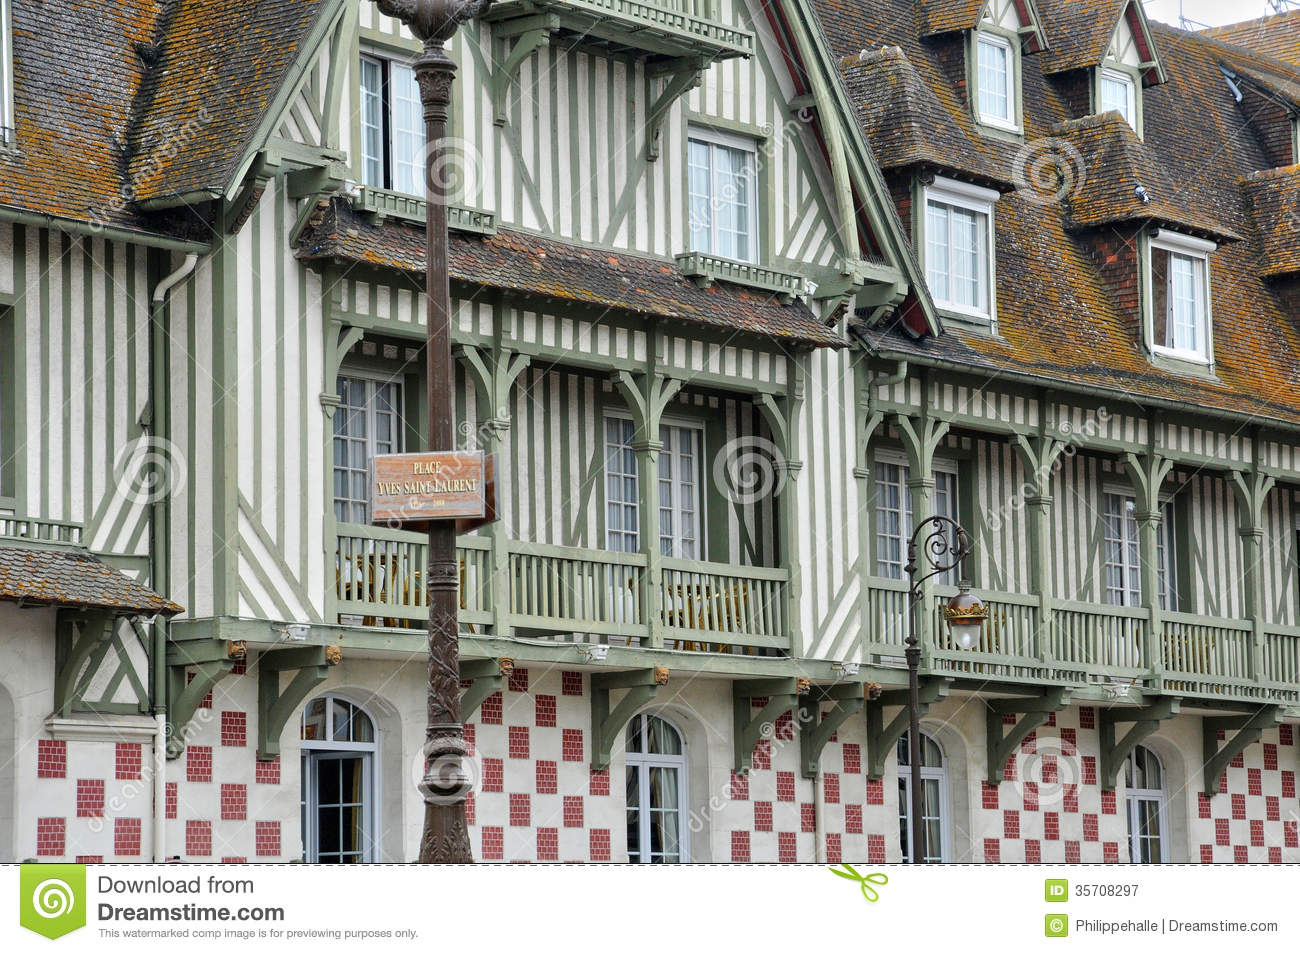 Normandy barriere hotel in deauville royalty free stock for Hotel deauville design